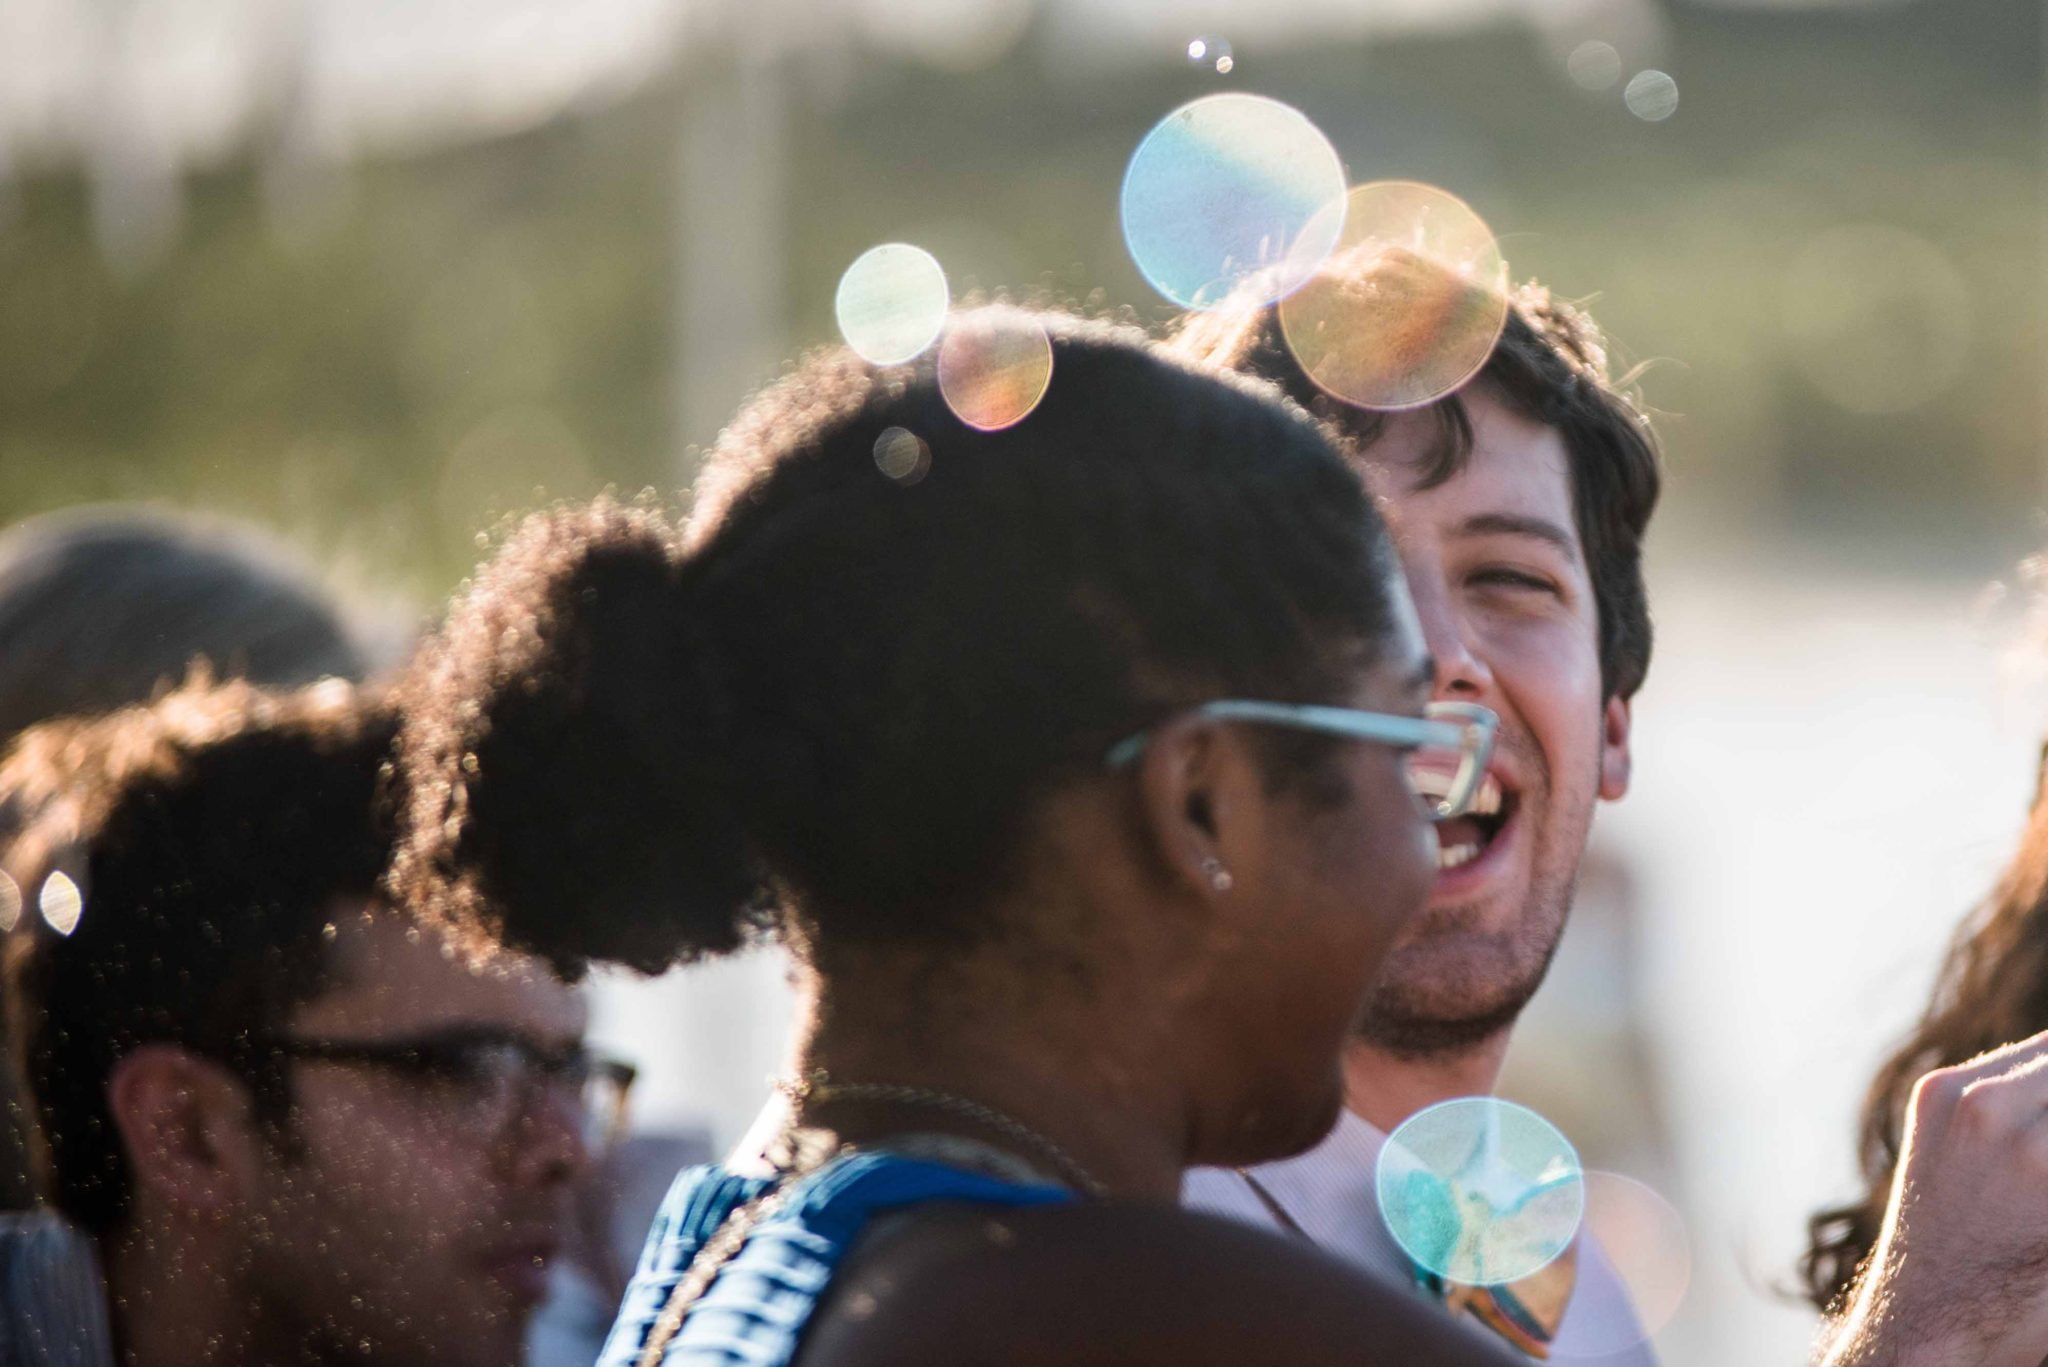 Guests laughing blowing bubbles for wedding photos